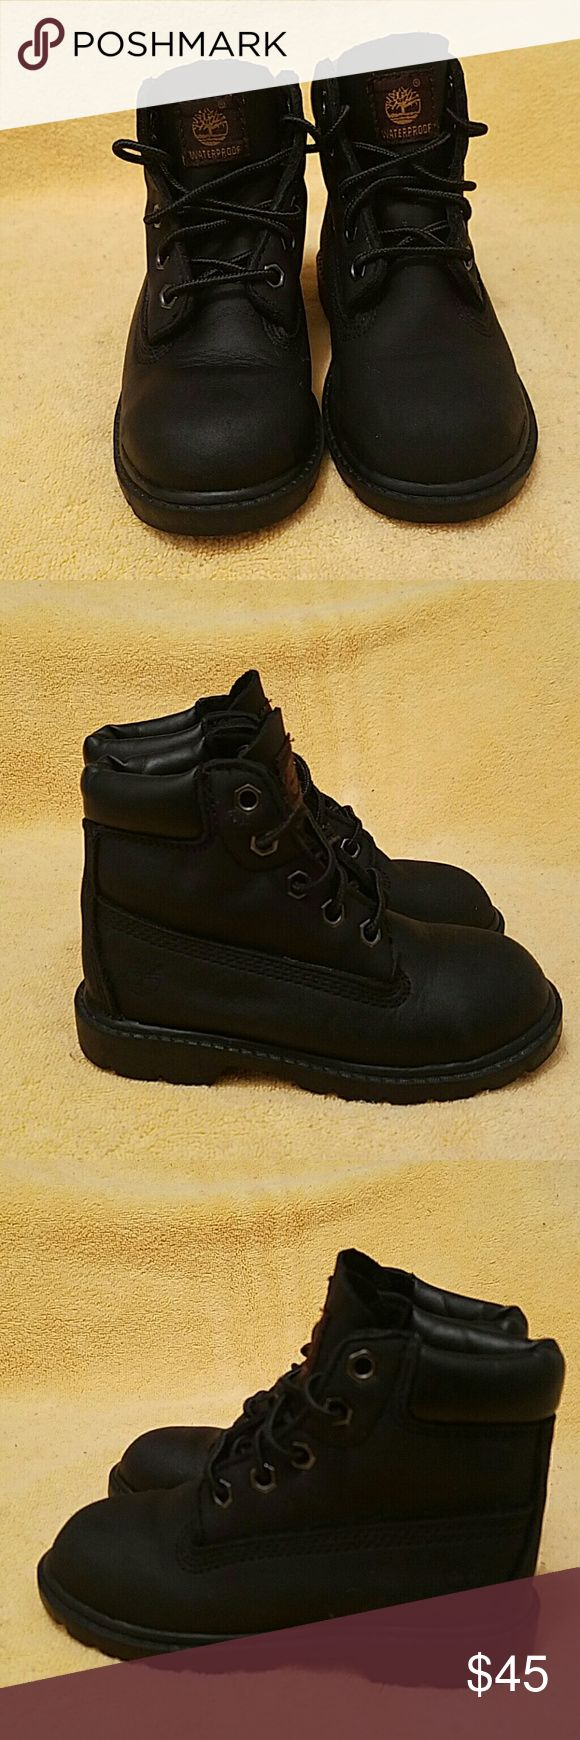 Timberland kids boots. Size 9 These Boots are in great used condition. Please refer to the pictures they are kids size 9 they are black in color they are like new. Timberland Shoes Boots